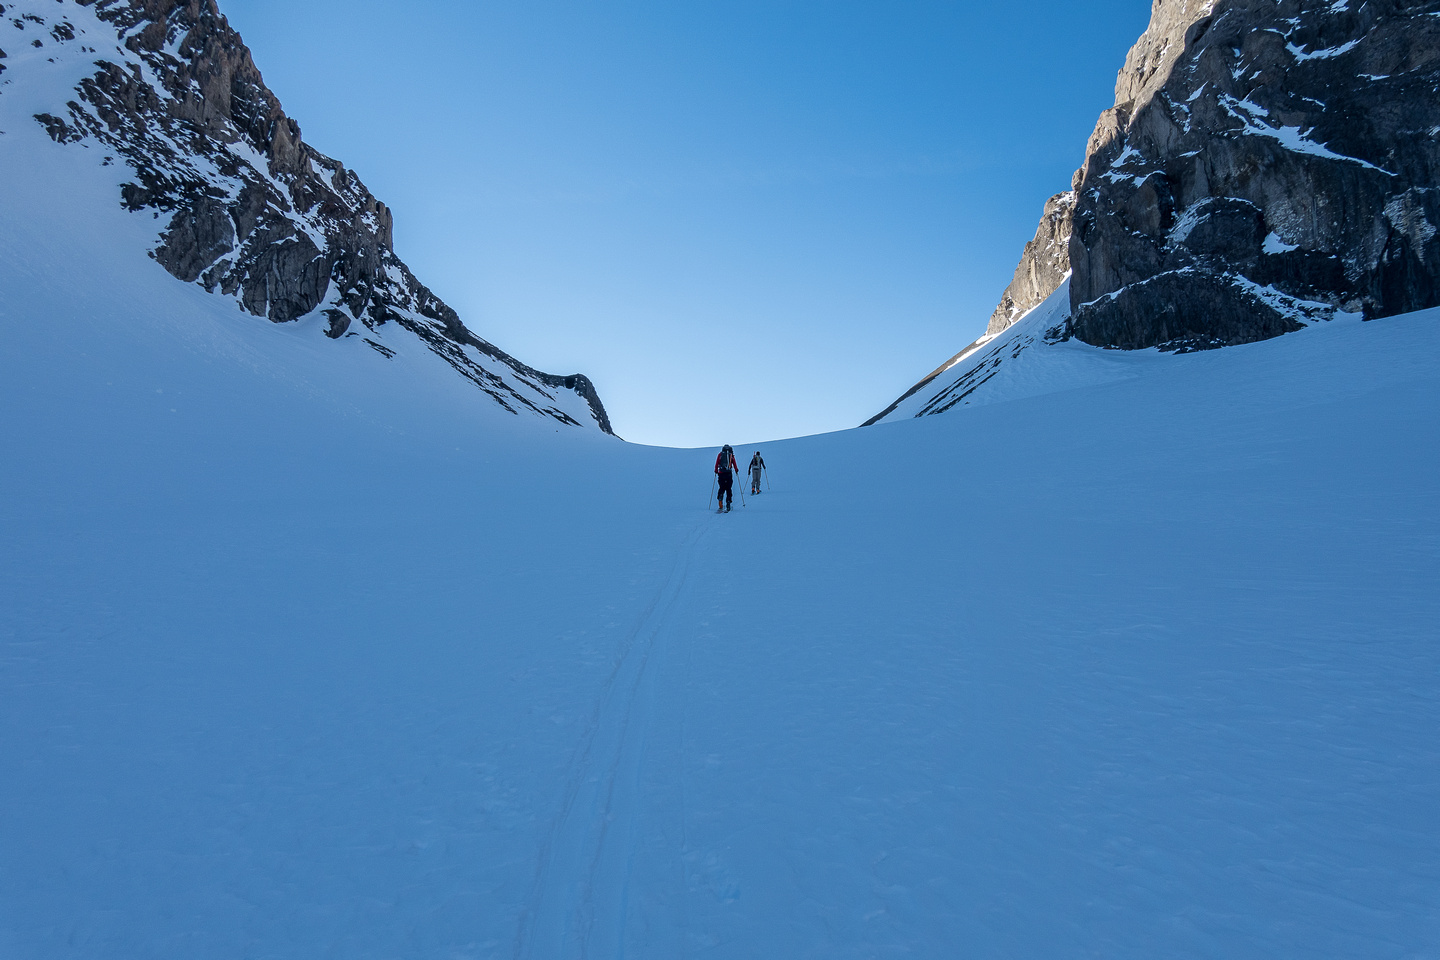 Skiing up the French Glacier. It's ~9km from the parking lot to the French col.